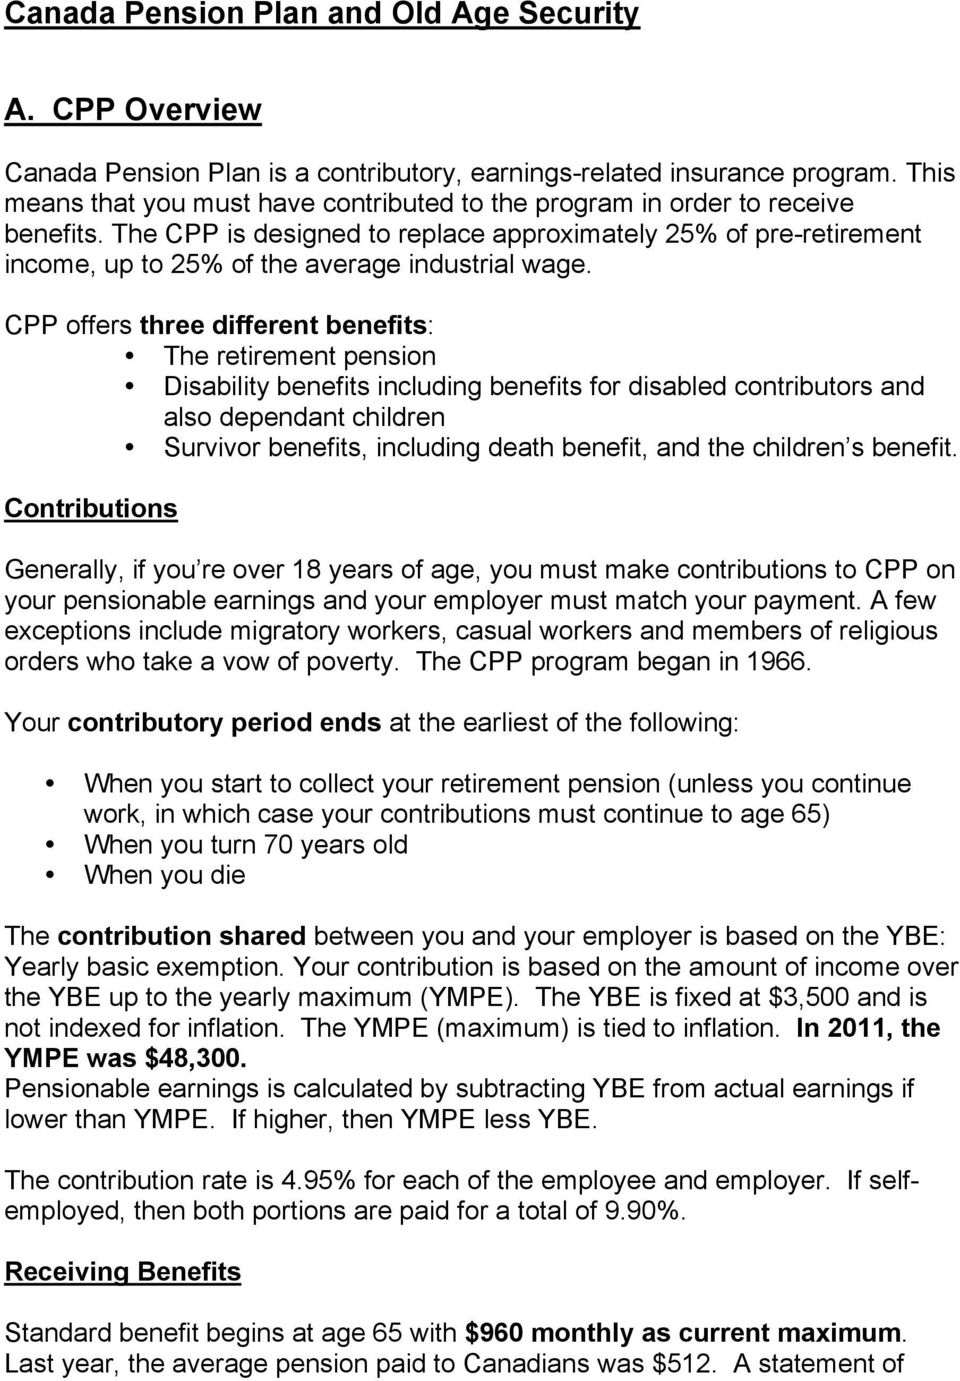 The CPP is designed to replace approximately 25% of pre-retirement income, up to 25% of the average industrial wage.